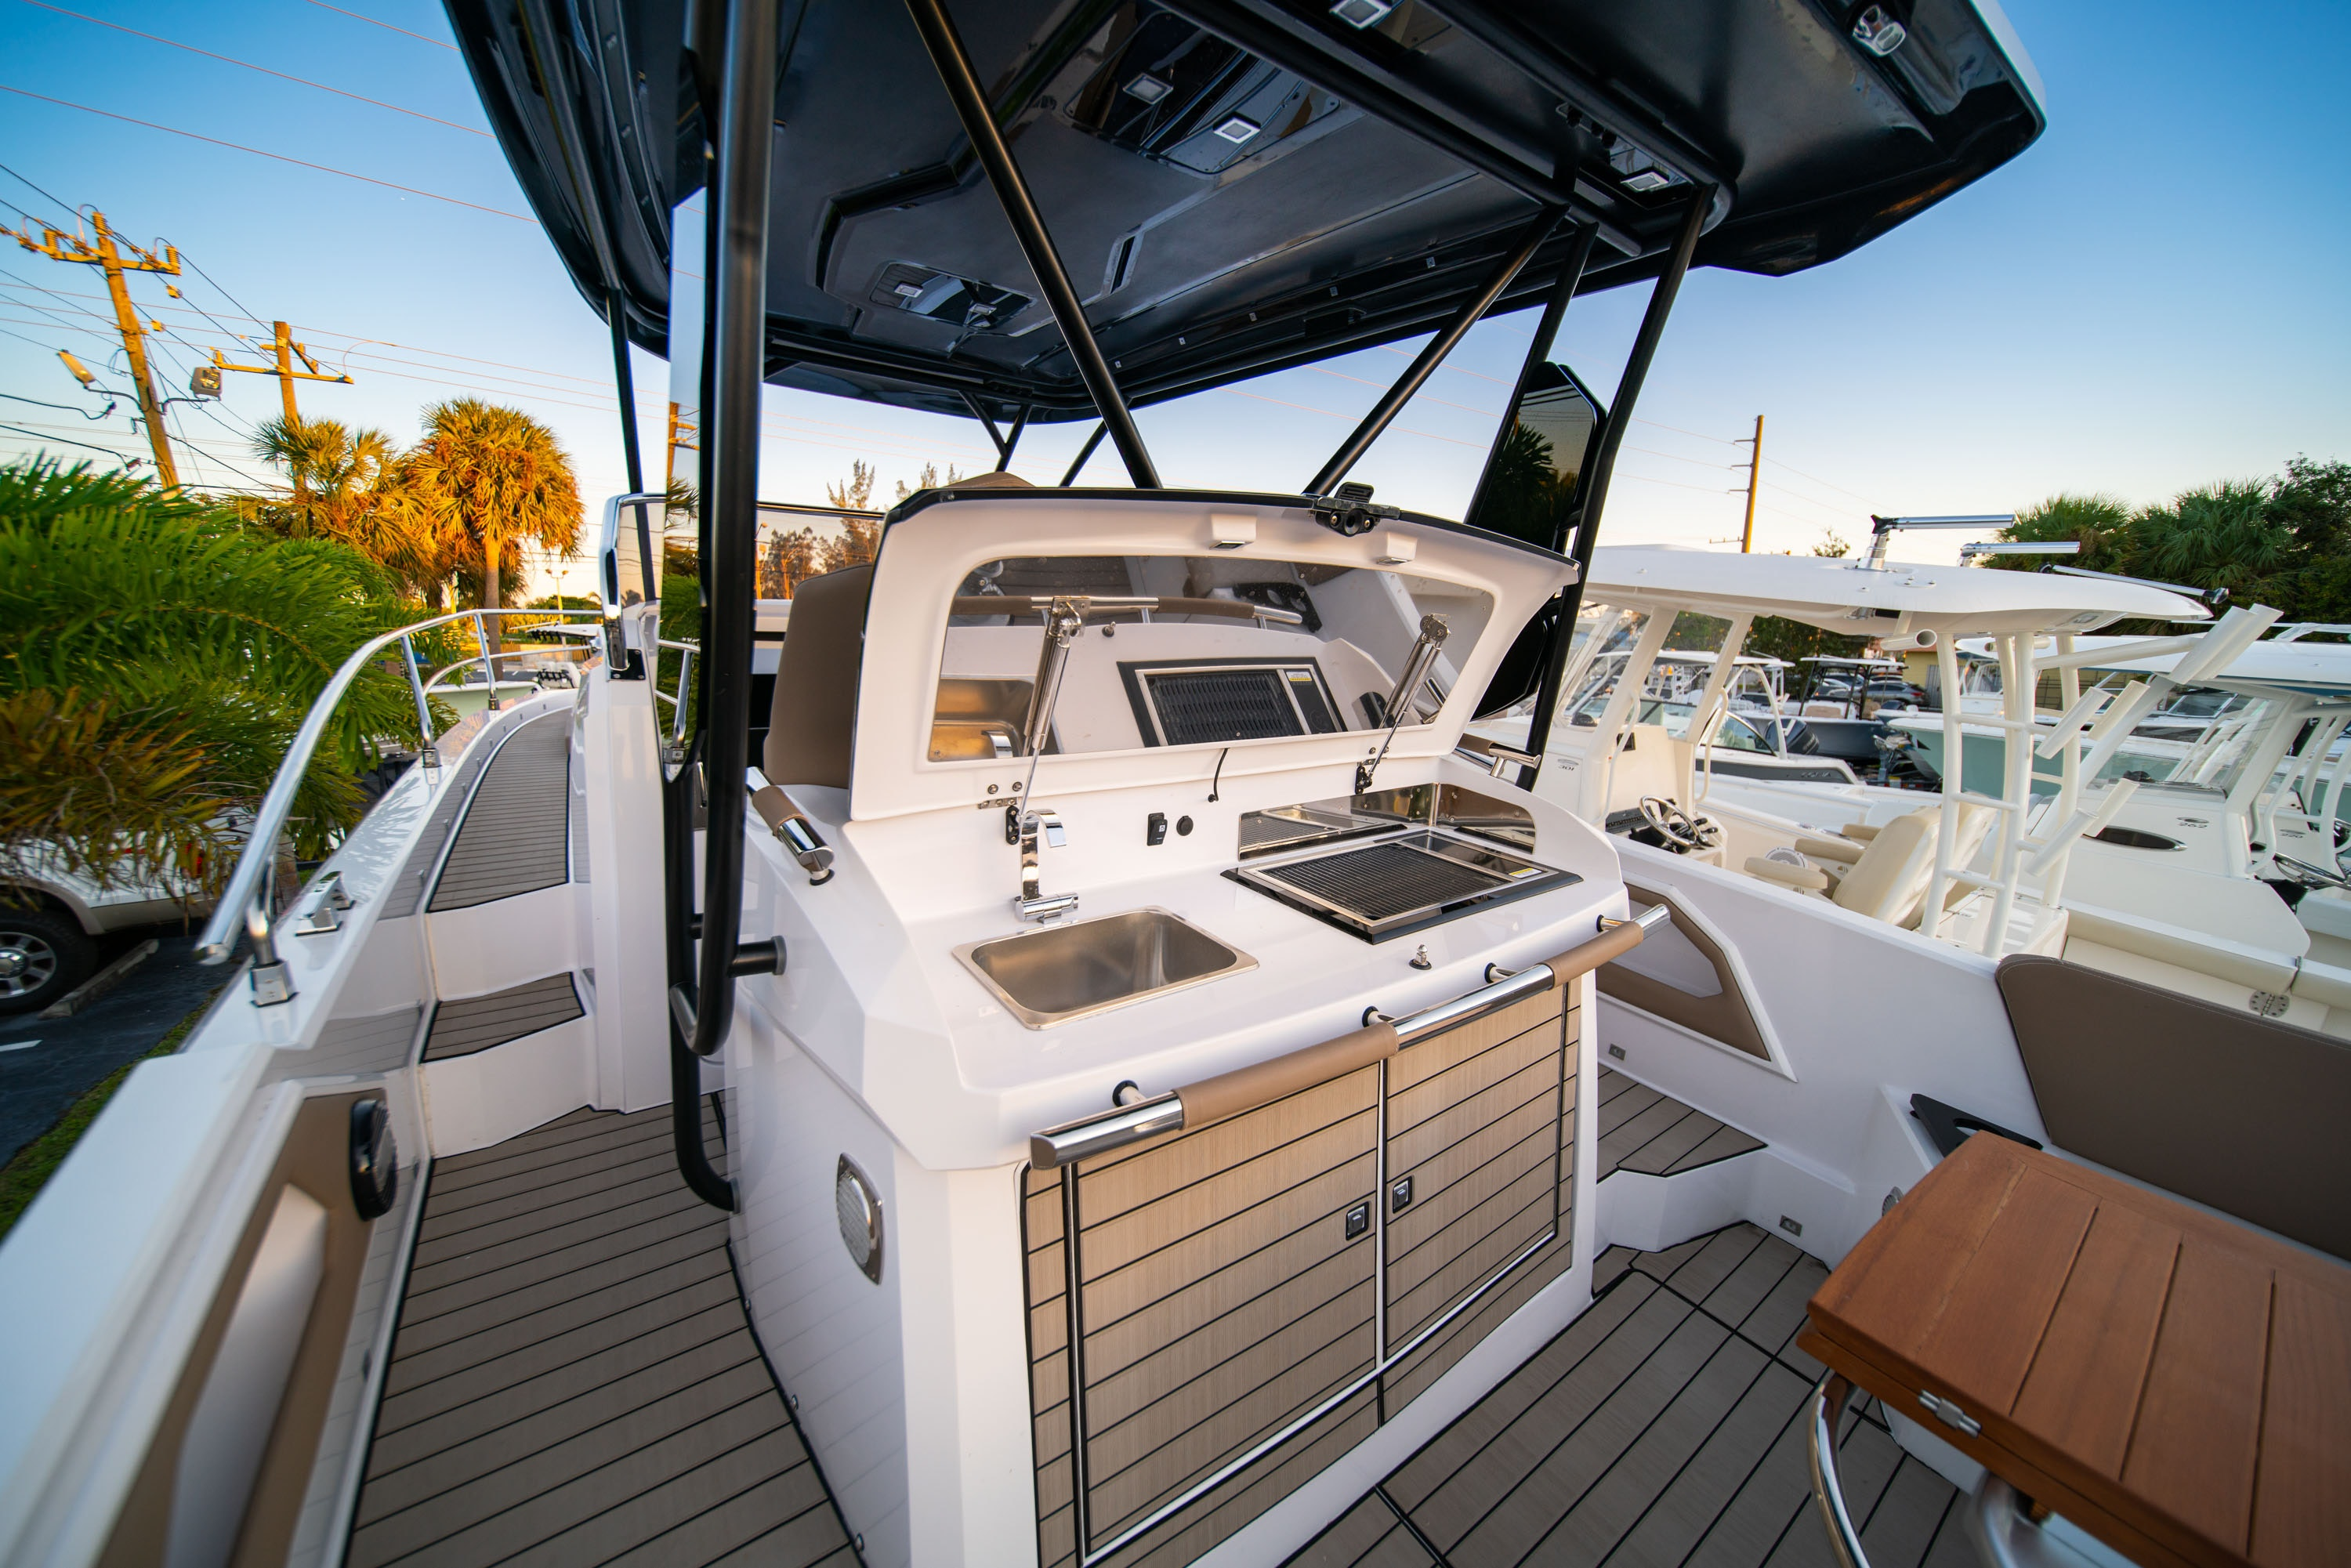 Thumbnail 13 for New 2019 Ranieri Next 370 SH boat for sale in West Palm Beach, FL